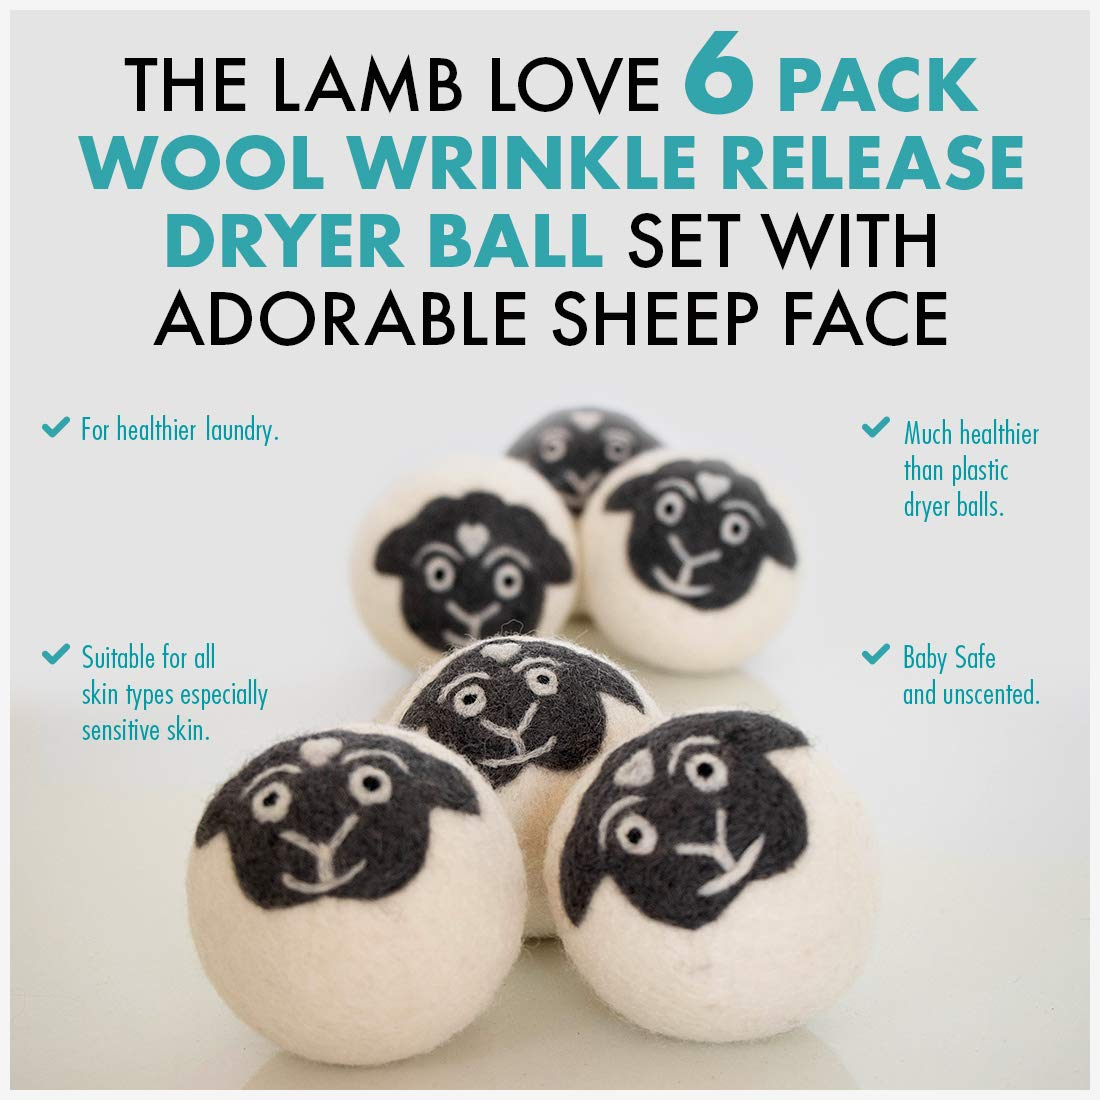 Wool Dryer Balls Laundry Lamb Natural Sheep Fabric Softener Organic Dryer Sheets Lint-Free Anti-Wrinkle Static-Free Reusable Dispenser Handmade, Eco-Friendly, Fair Trade Wrinkle Remover 6-Pack-XL